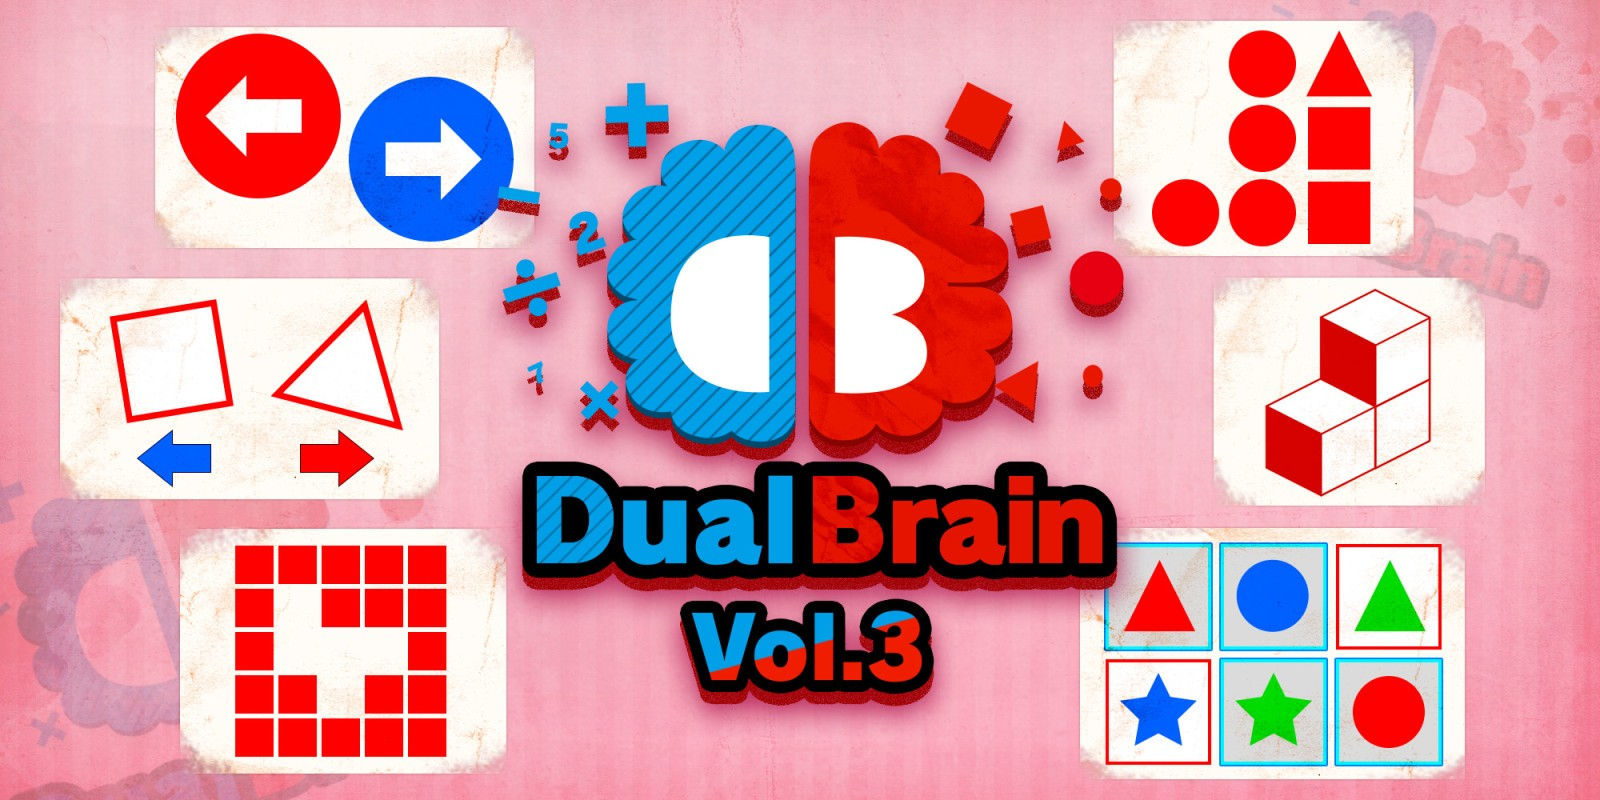 Dual Brain Vol.3: Shapes